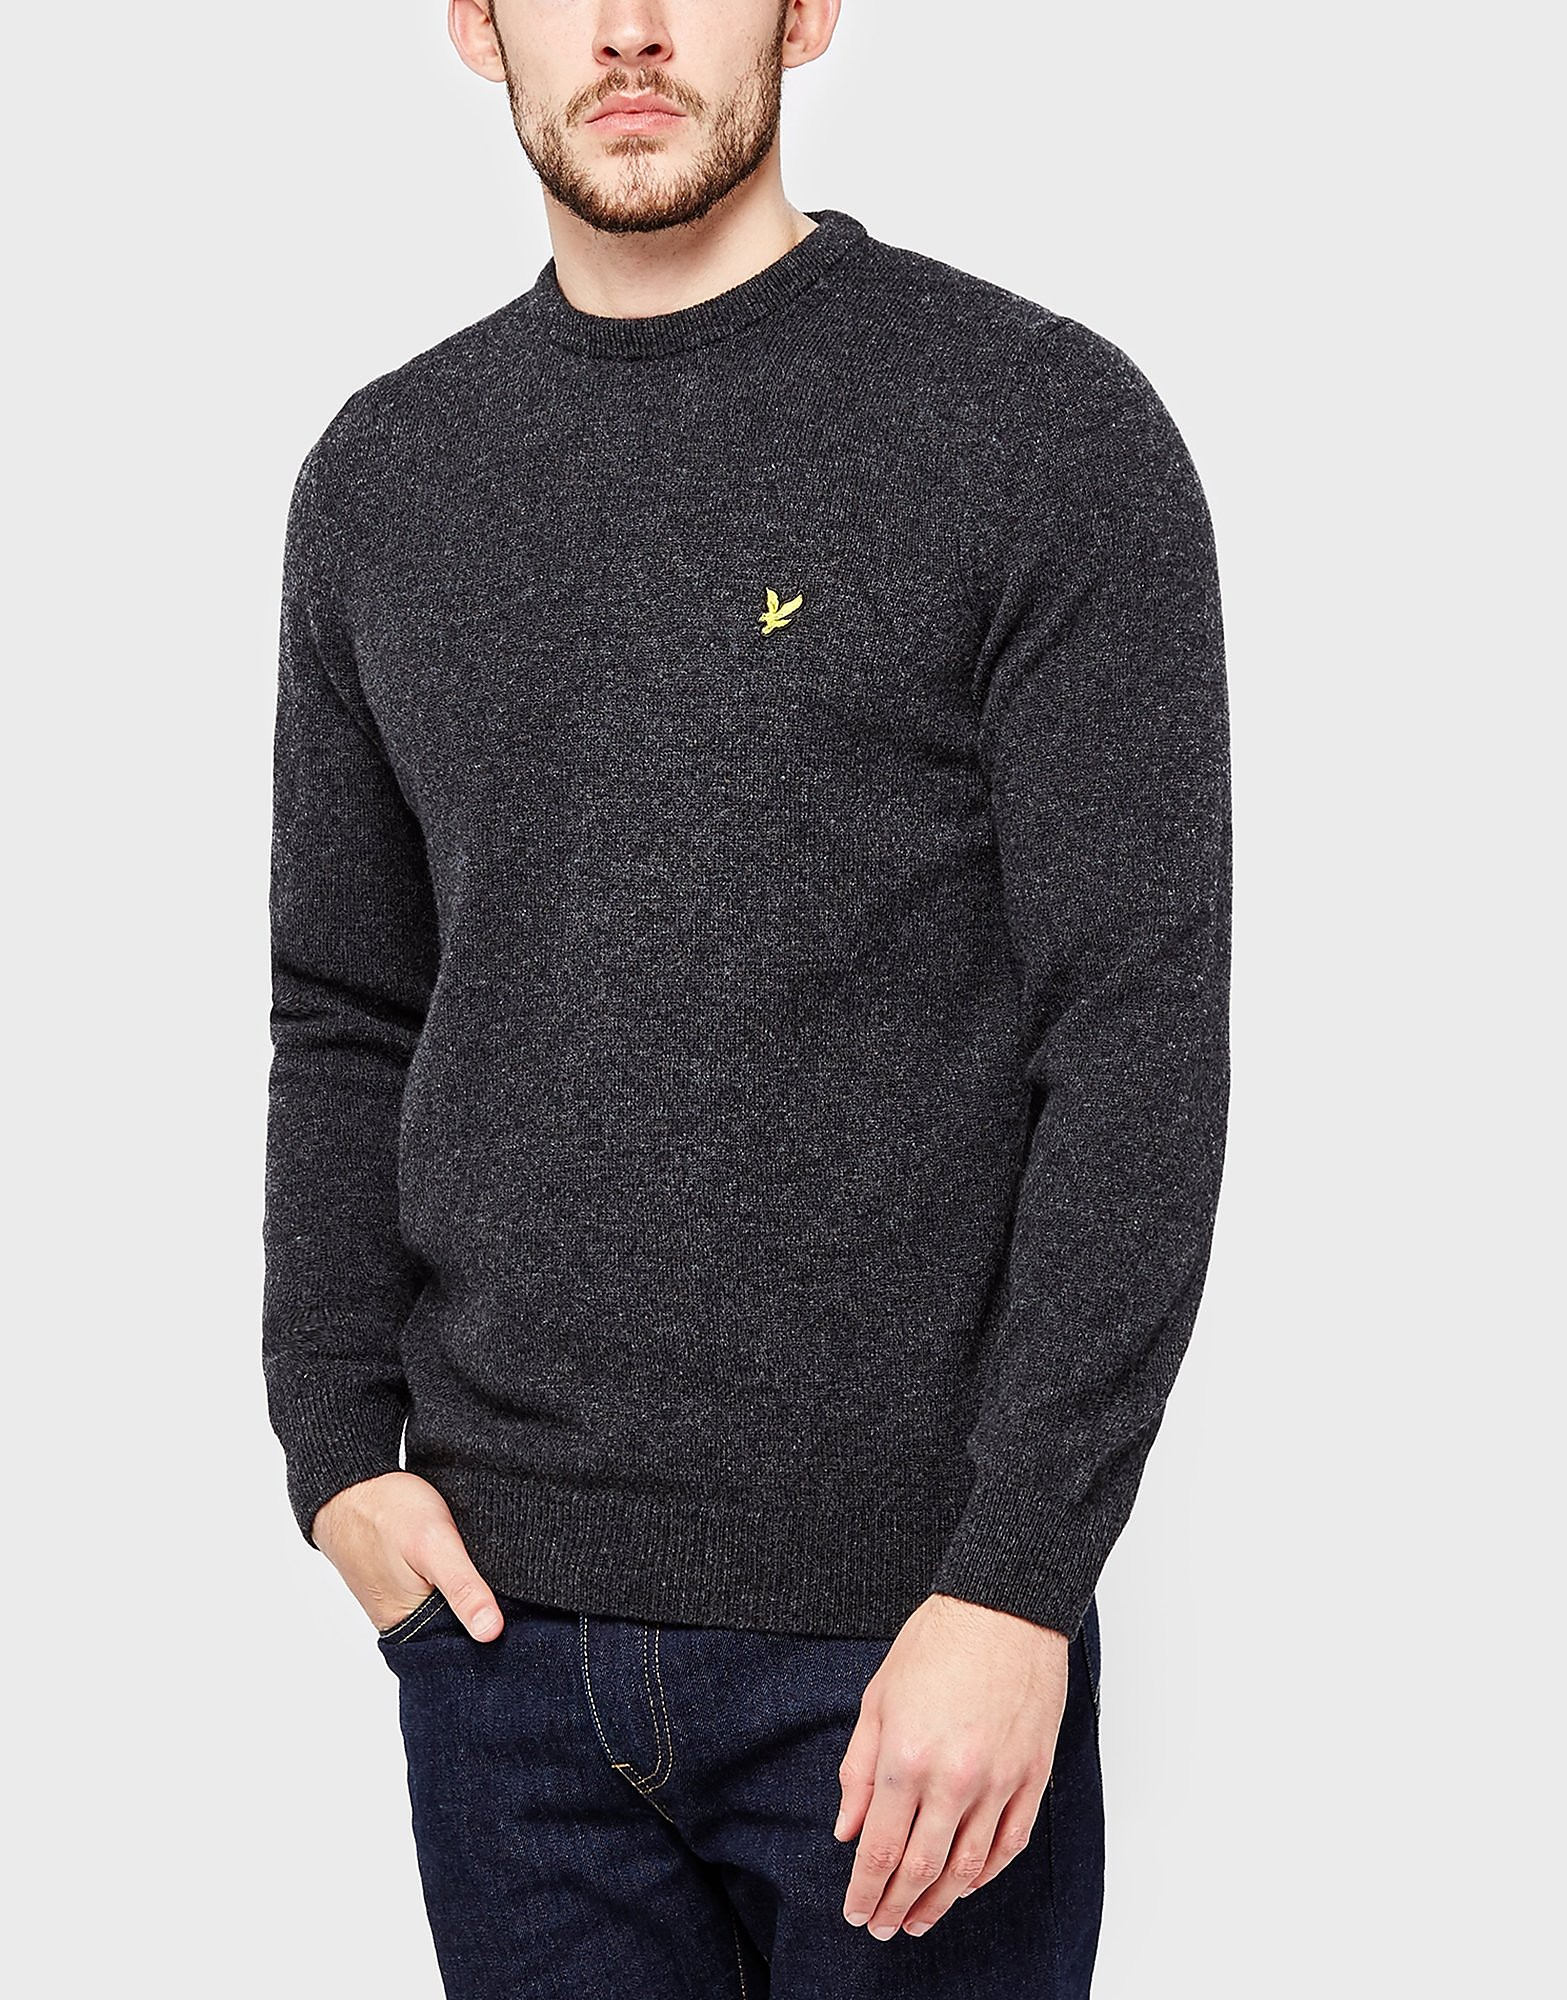 Lyle & Scott Lambswool Crew Knit